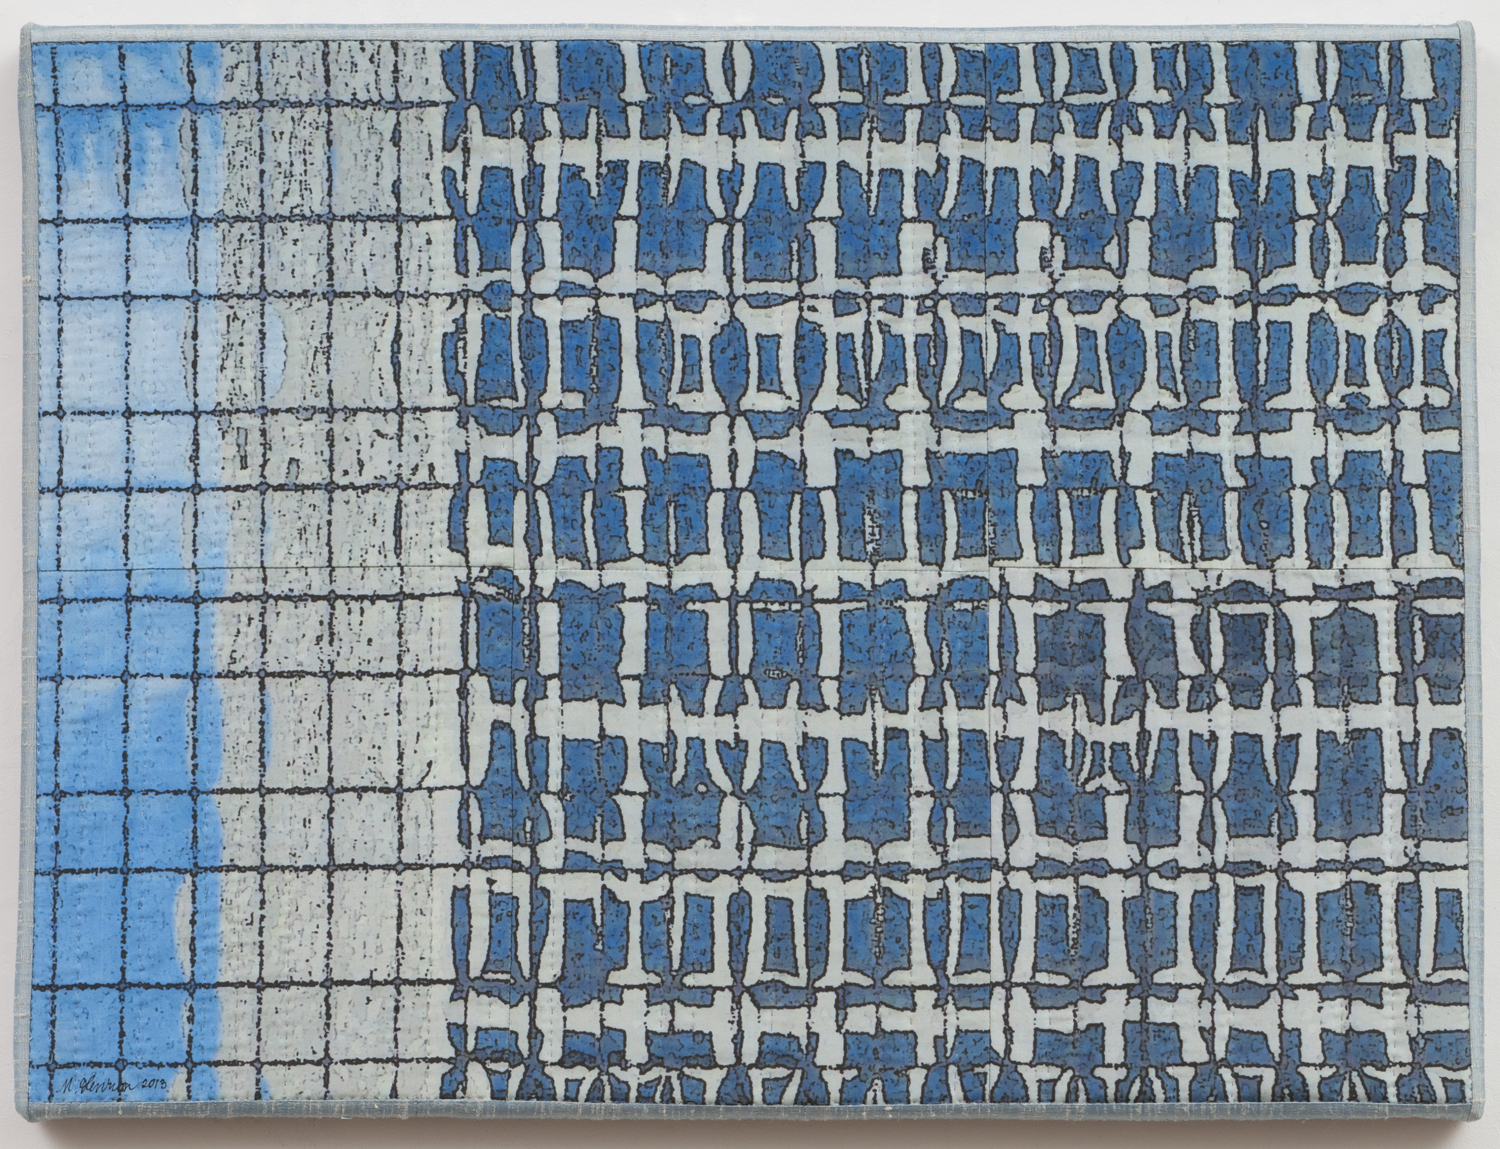 """1250-7, Chicago Windows 1303, 18""""x24"""", mixed media on silk, hand quilted, gallery-wrapped stretched canvas"""